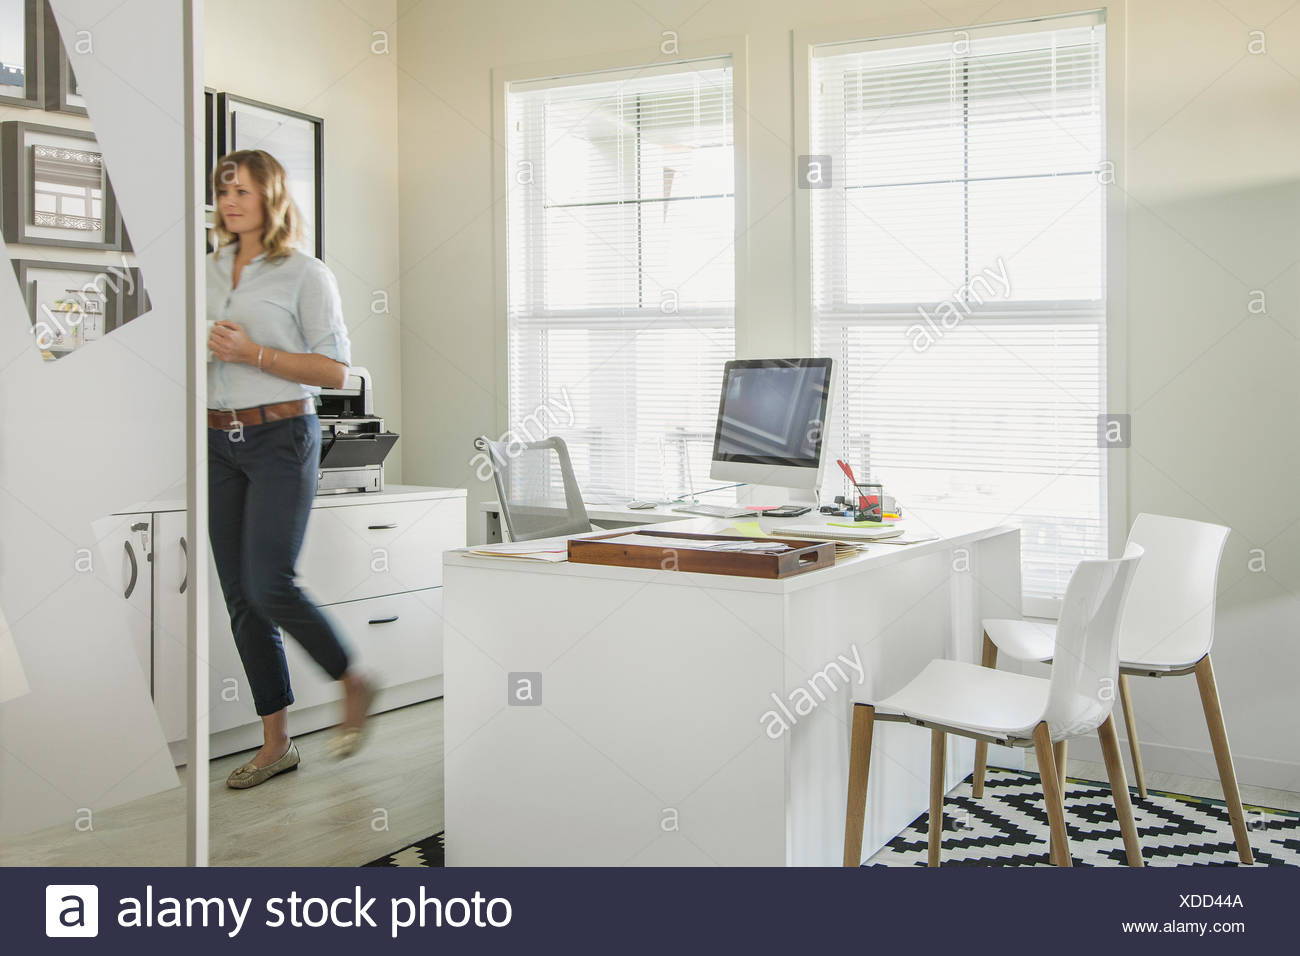 Woman walking in home office - Stock Image